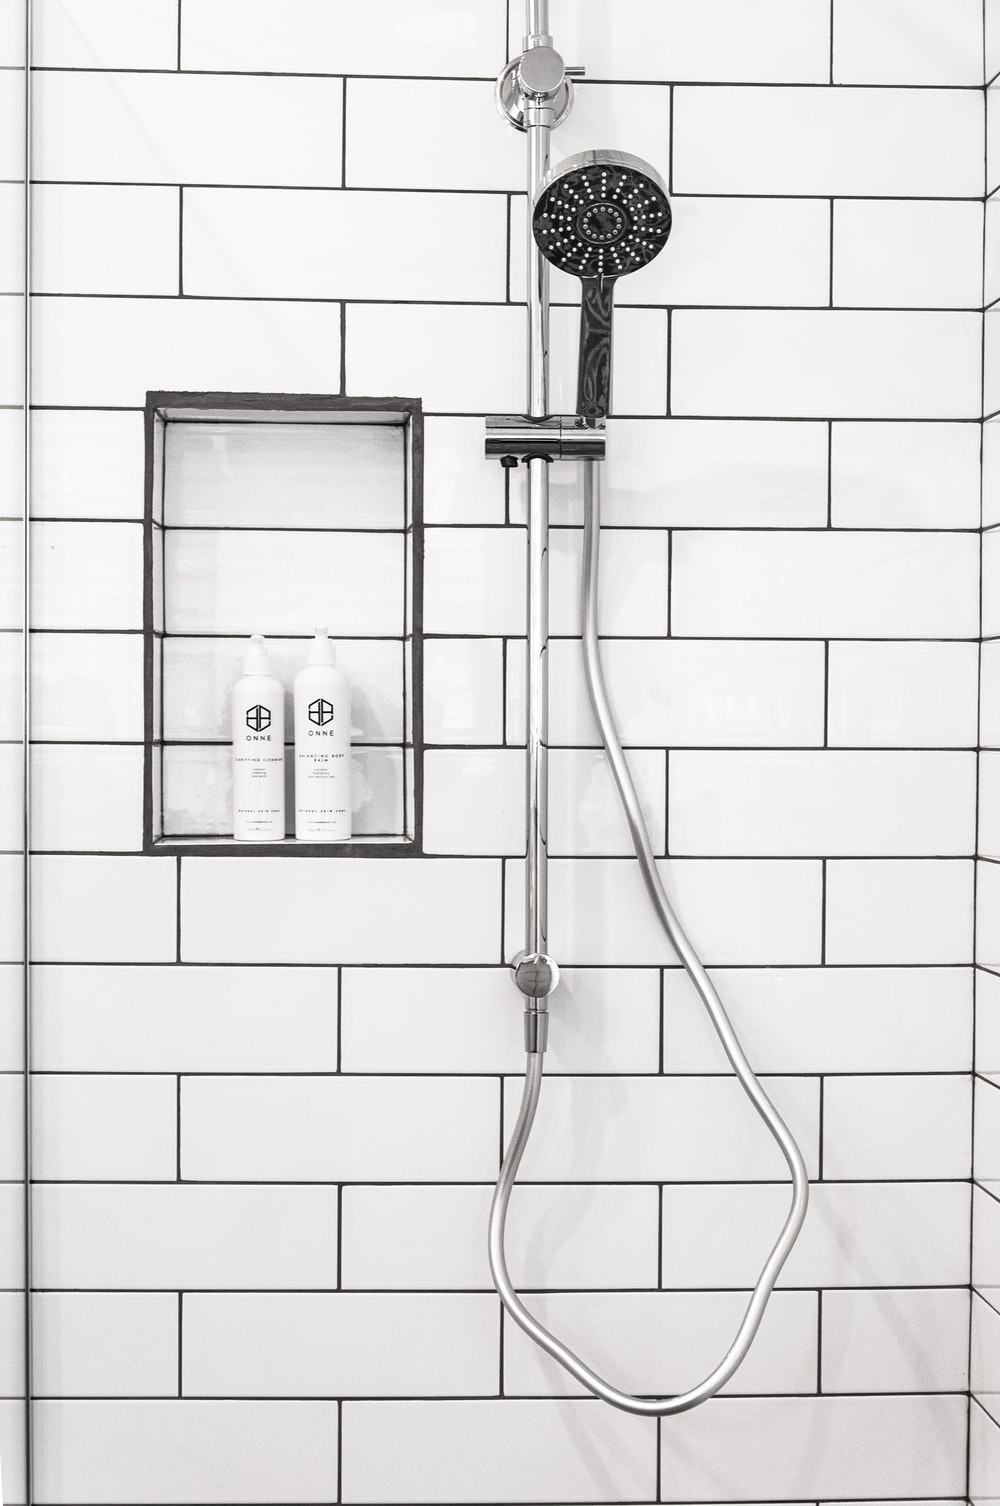 silver-colored shower head